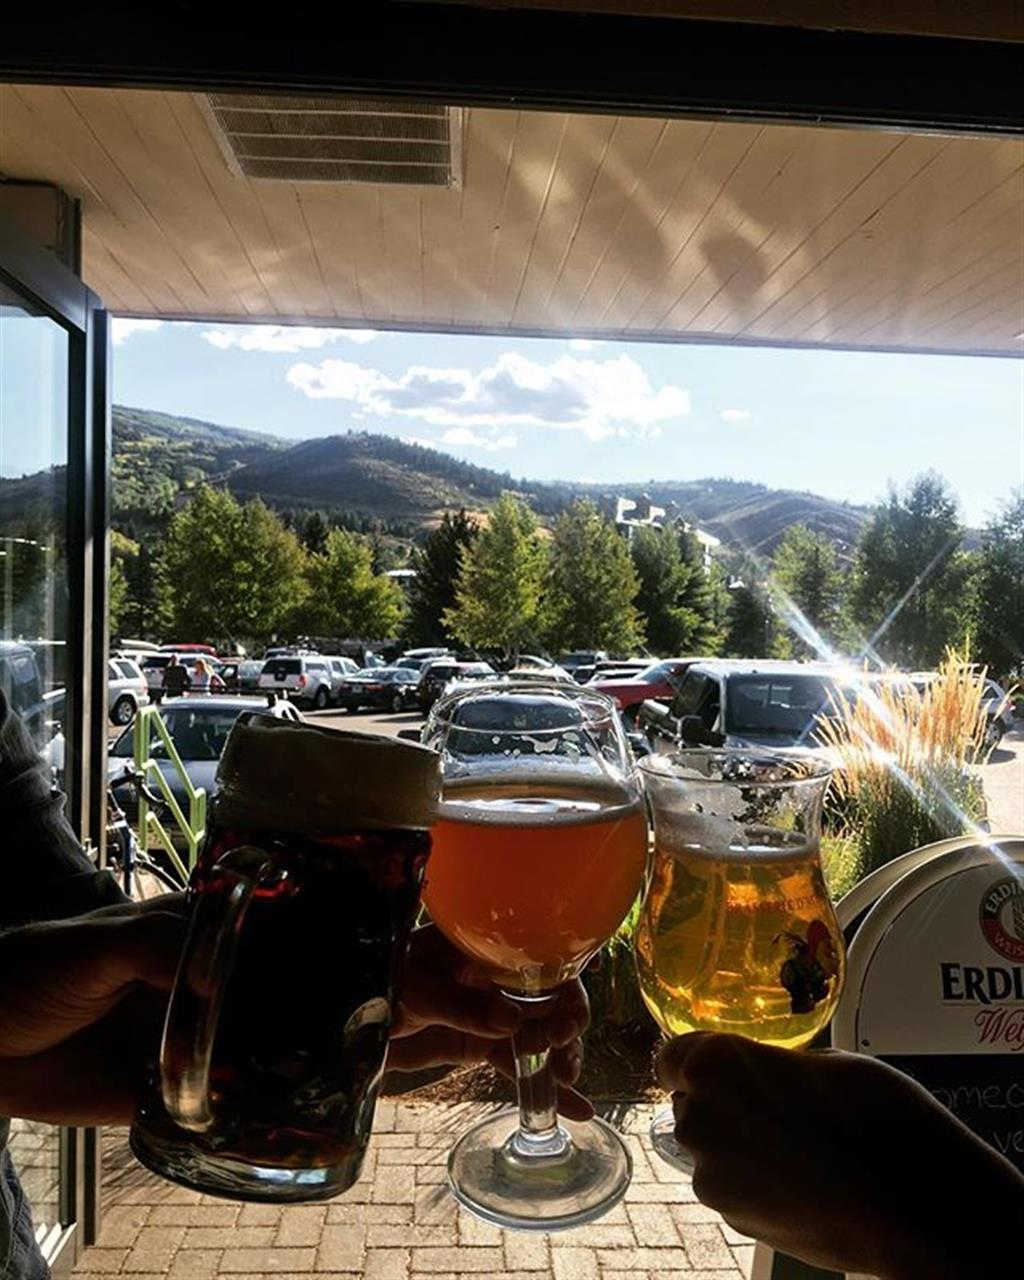 You have to check out @einprositfinebeers in their new location in Avon. German beers, sunshine, and mountains to get you through the work week ?? Prost! #leadingrelocal  #livelocal